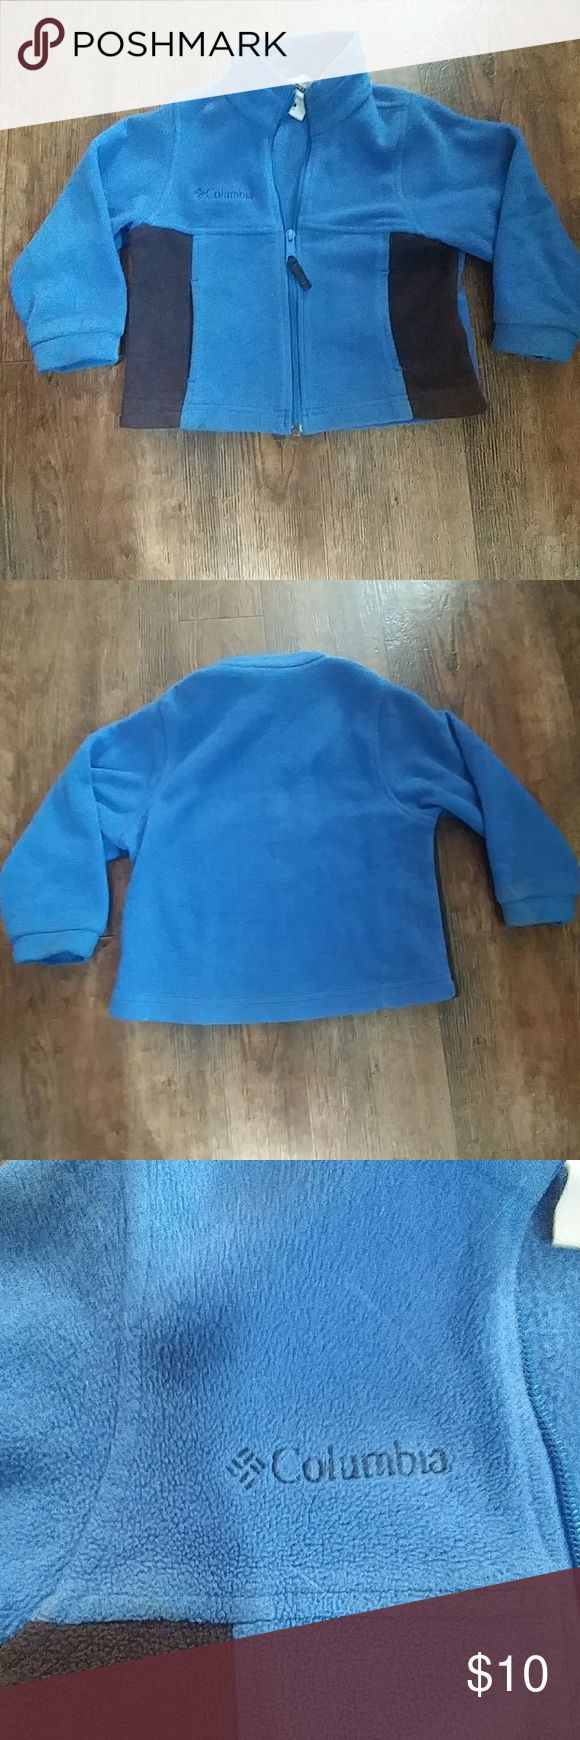 Columbia jacket Royal blue toddler Columbia jacket. Basic design with pockets and working zipper with black accents. Had for a couple of years but still in pretty good condition! Great for fall and winter:) size 4t-true to size Columbia Jackets & Coats